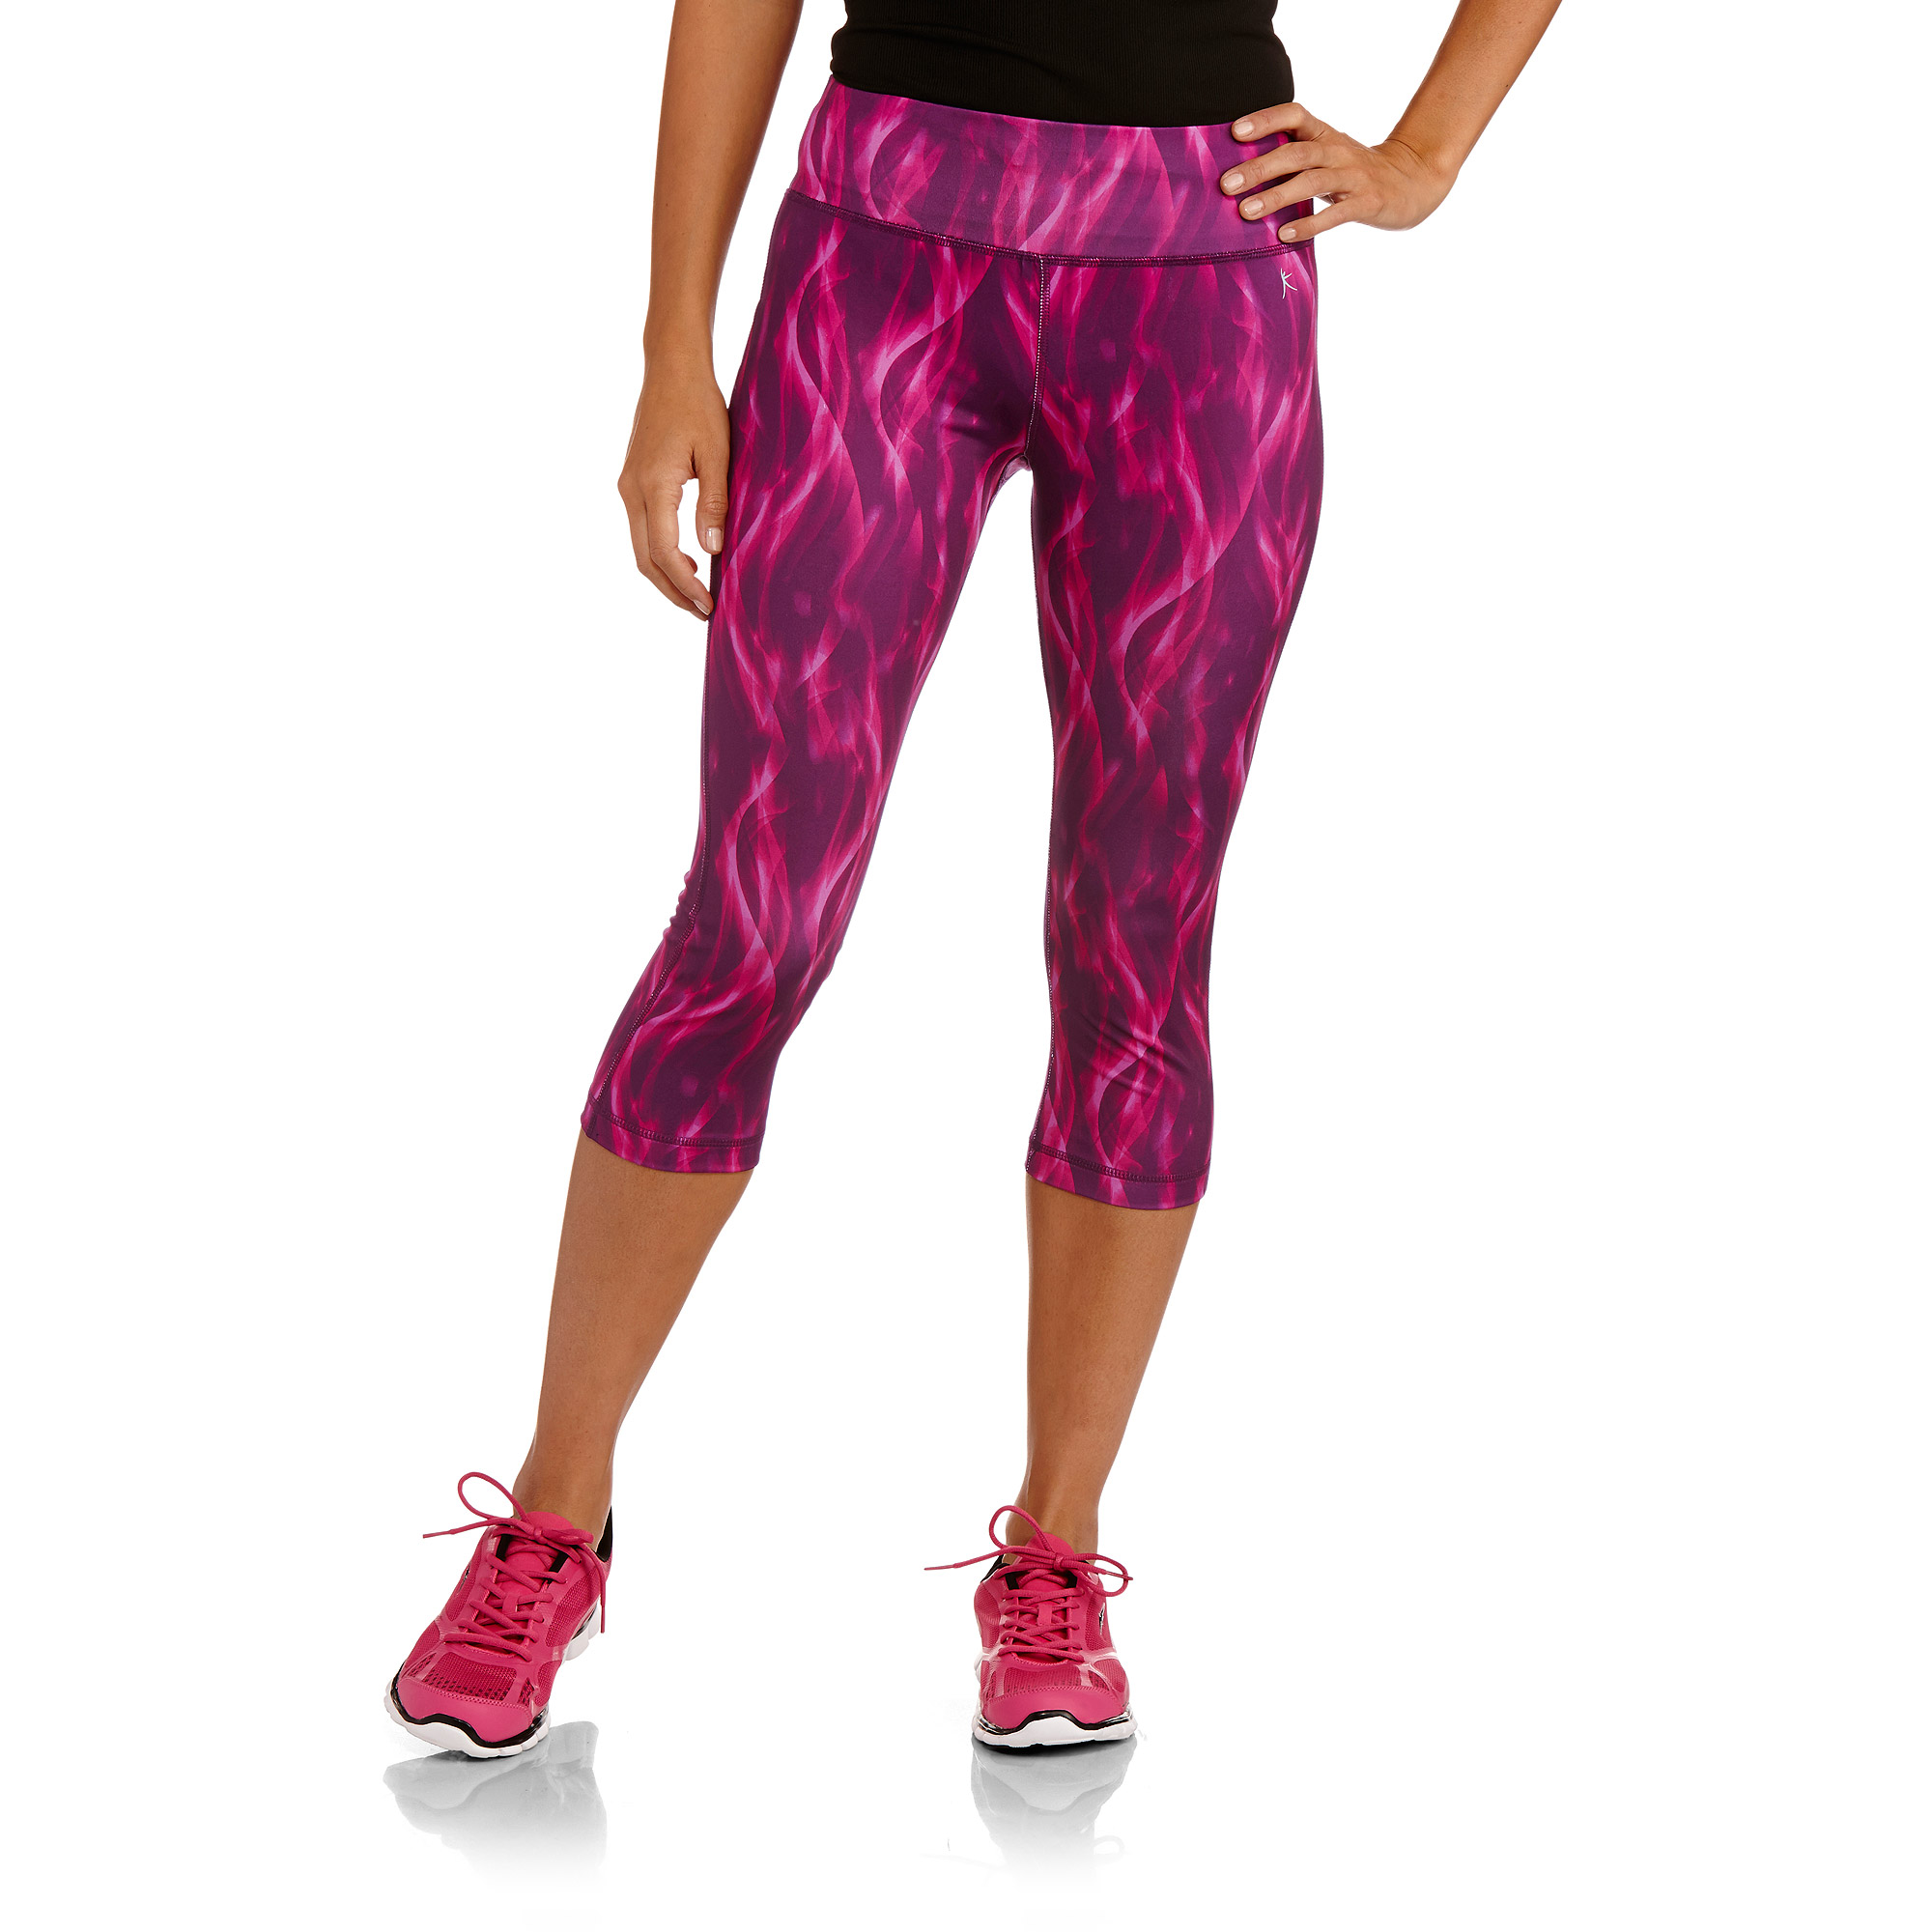 When shopping for cute and functional workout clothes, there's one retailer that may not come to mind right away but is totally worth a try: Walmart.